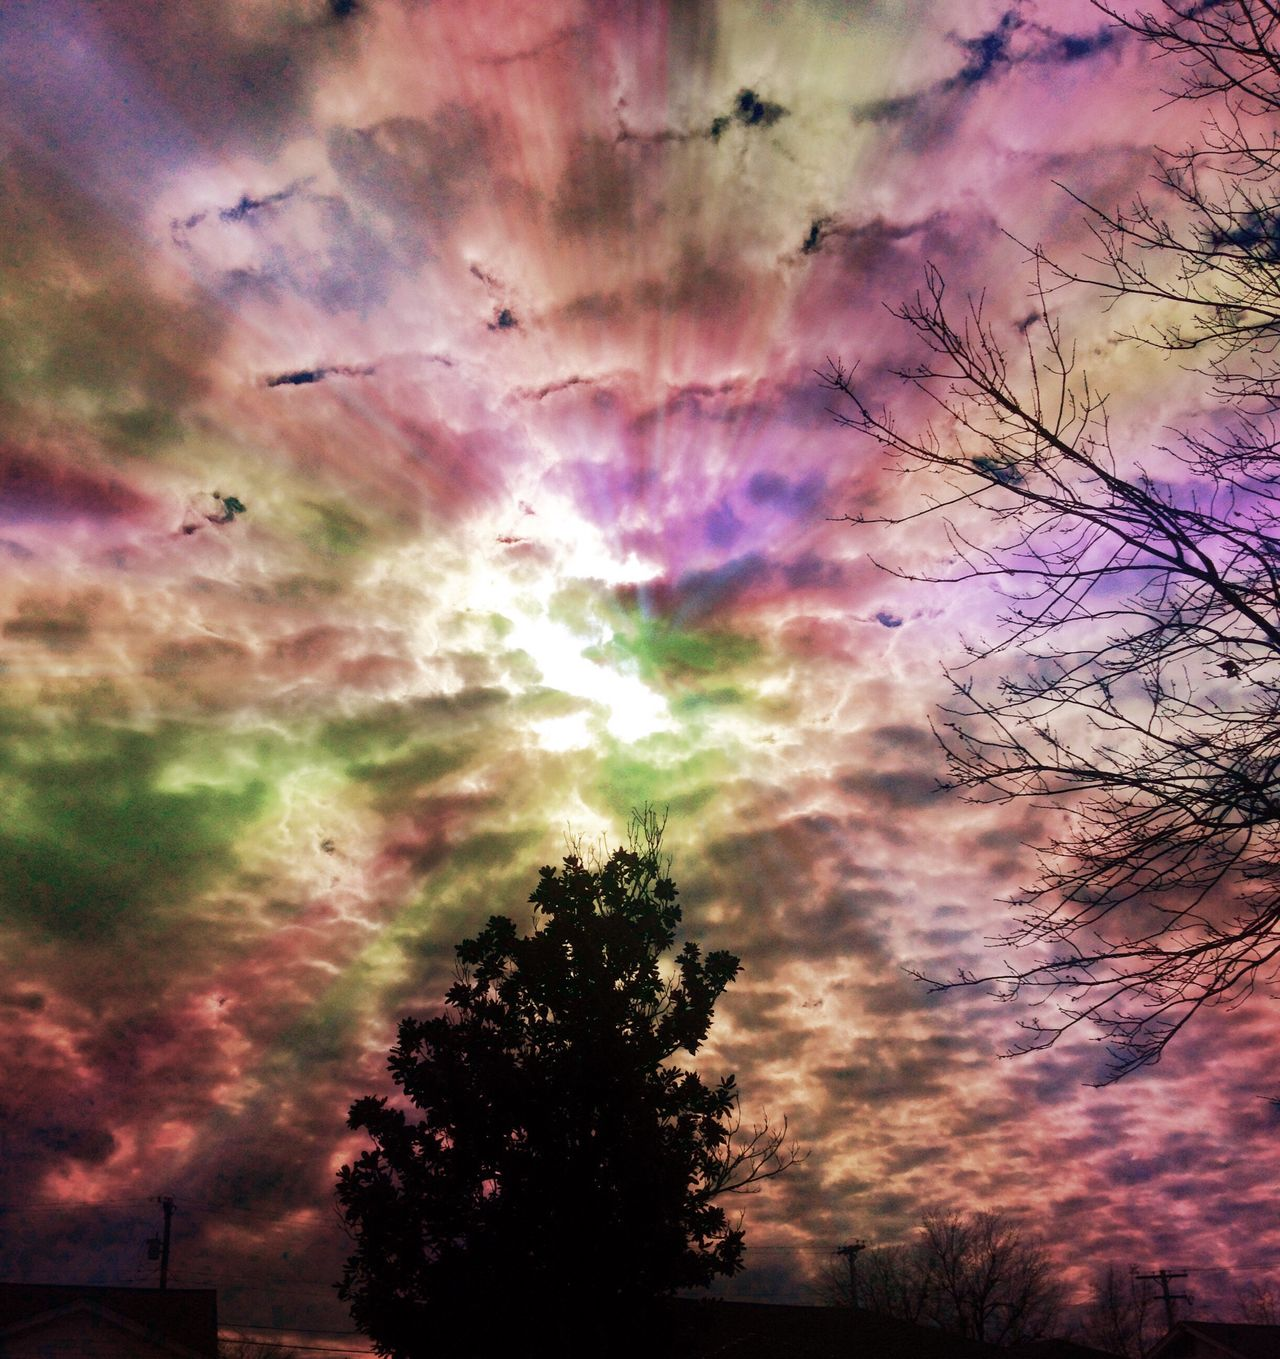 Cloud Porn Cloud_collection  Cloud Clouds And Sky Clouds Showcase: February EyeEm Best Edits Oklahoma My Oklahoma Tulsa, Oklahoma Tulsa,oklahoma Nature Photography Oklahoma Nature Beautiful Nature Eye Em Nature Lover Oklahoma Sky Oklahoma Skies